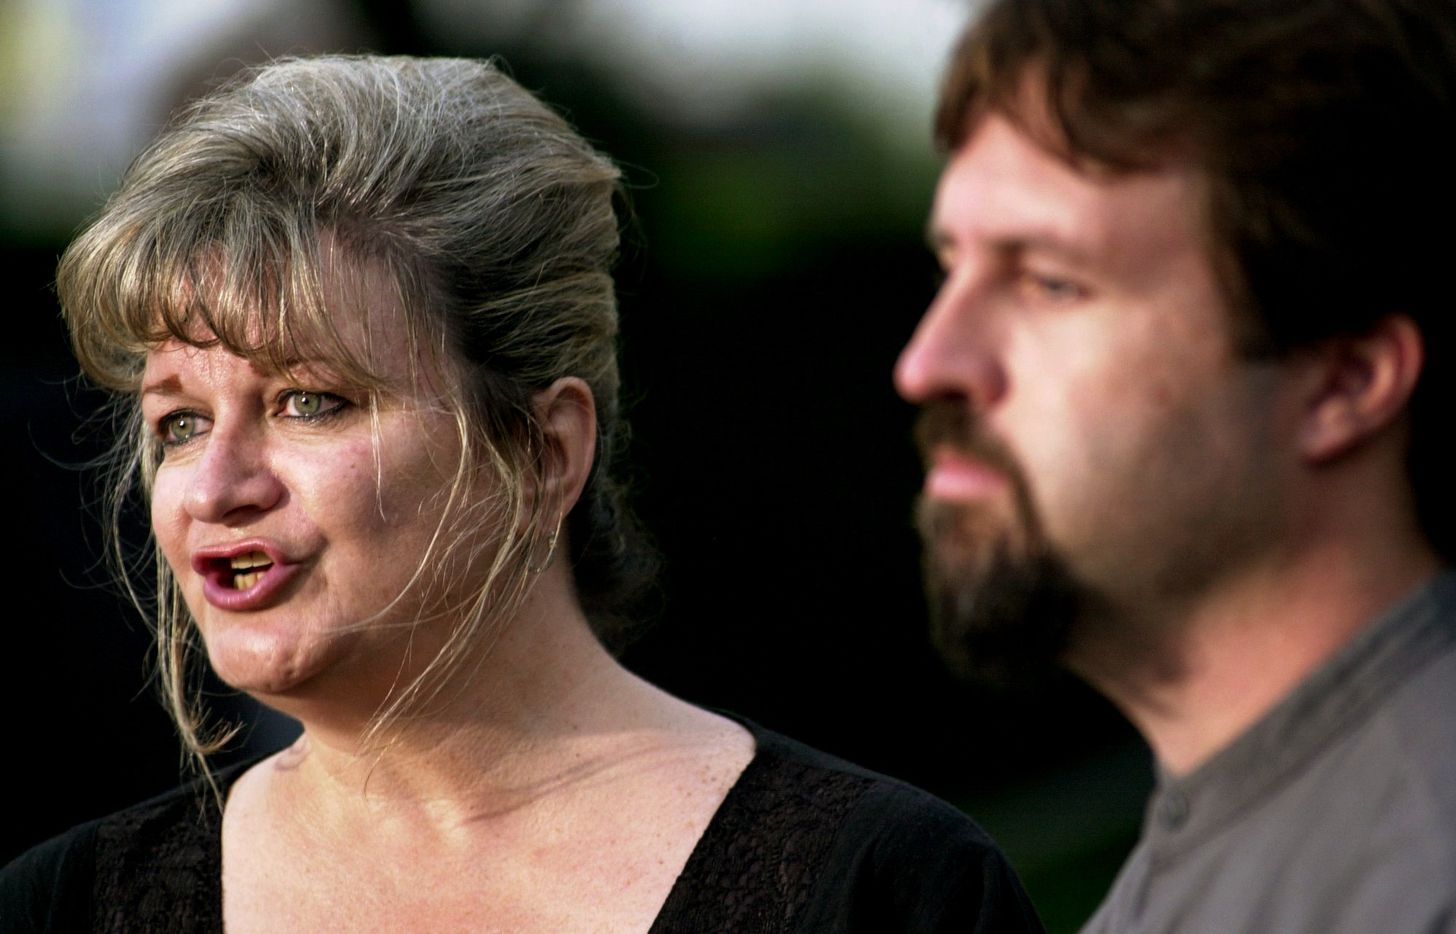 Darlie Kee, Darlie's Routier's mother, spoke during a press conference in front of the Frank Crowley Criminal Courts Building in Dallas on May 21, 2003. Routier is on death row for the 1996 stabbing death of her 5-year-old son. She is also accused of killing her 6-year-old son. Darlie Routier and her family have said from the beginning that an intruder broke into the home and killed the boys and injured her.